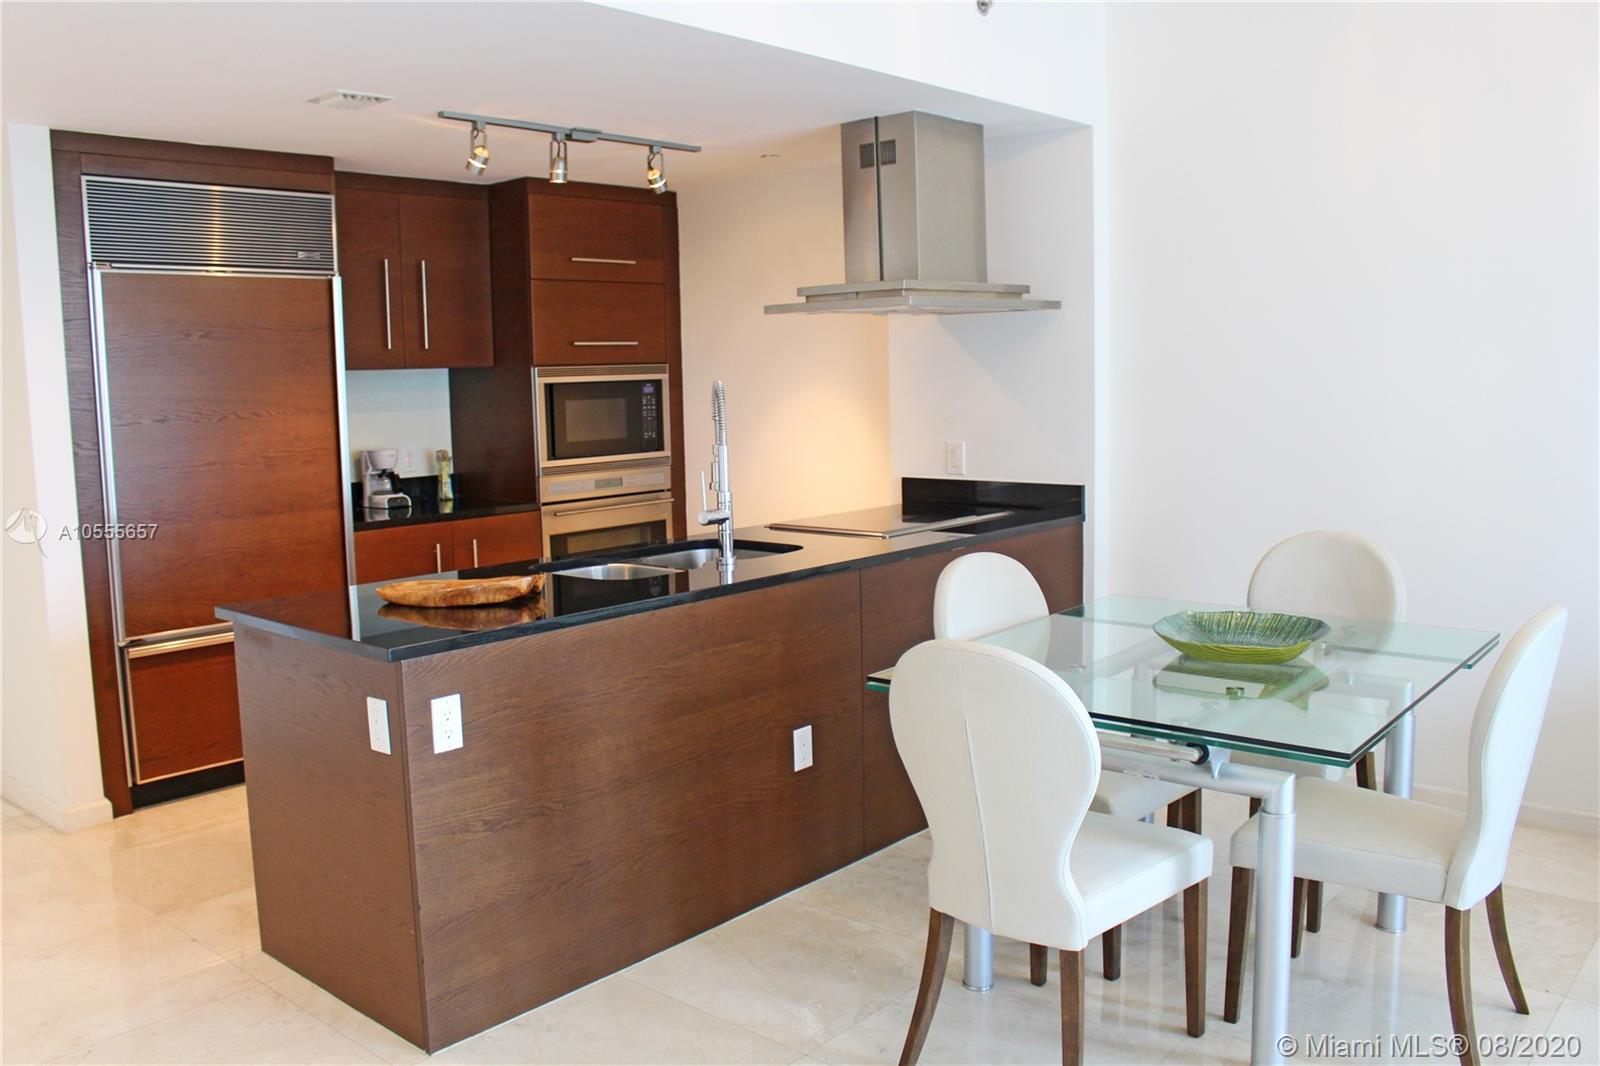 Welcome Home! Relax and Enjoy your stay in this gorgeous all-white modern 1 bedroom apartment located at the luxury Icon Brickell Tower three, where the W hotel is also located. CAN BE RENTED DAILY, WEEKLY OR MONTHLY. We provide our guests all they need to have a pampering experience (towels, bed sheets, glassware, cooking utensils, and more). Free Internet and more. Valet parking is included only in monthly rentals. Contact Us for weekly and daily rates. ***Prices may vary depending on the season and taxes may apply + Cleaning Fee